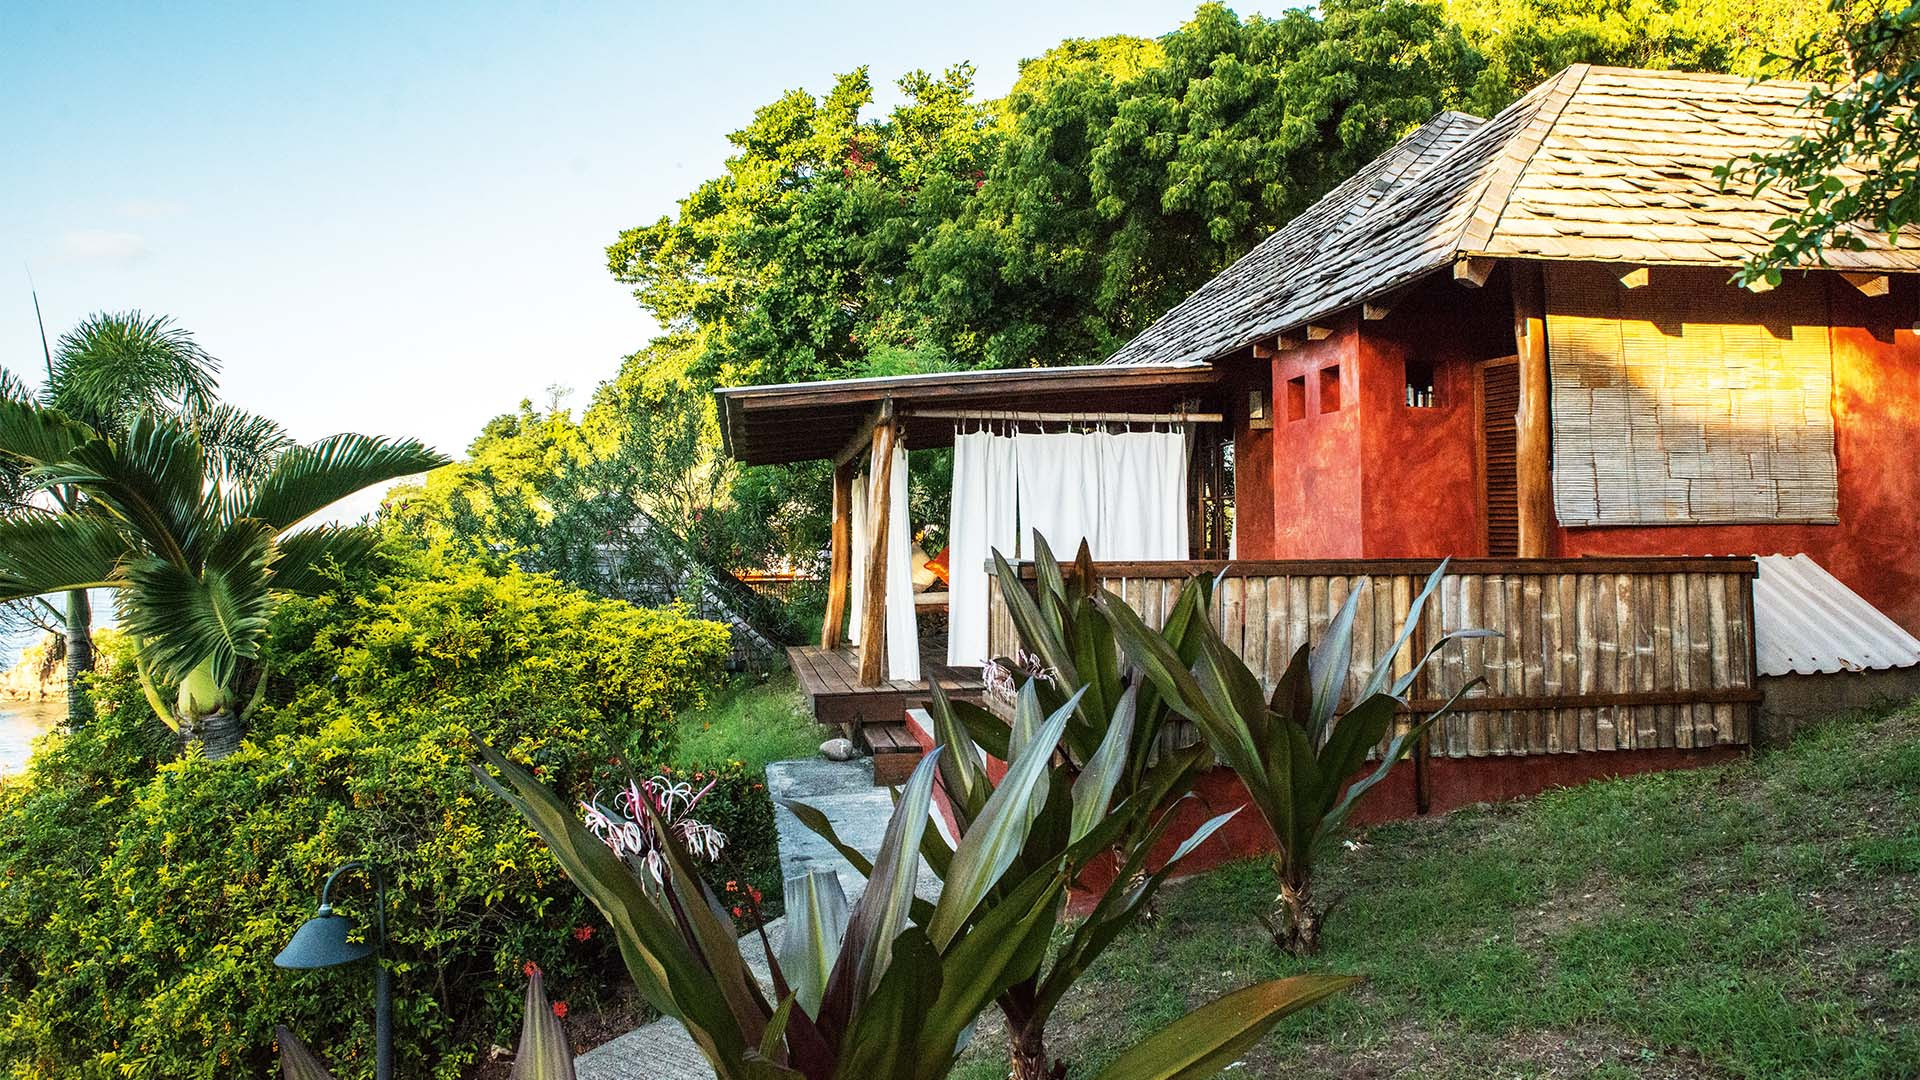 A guesthouse nestled in a forest in Grenada